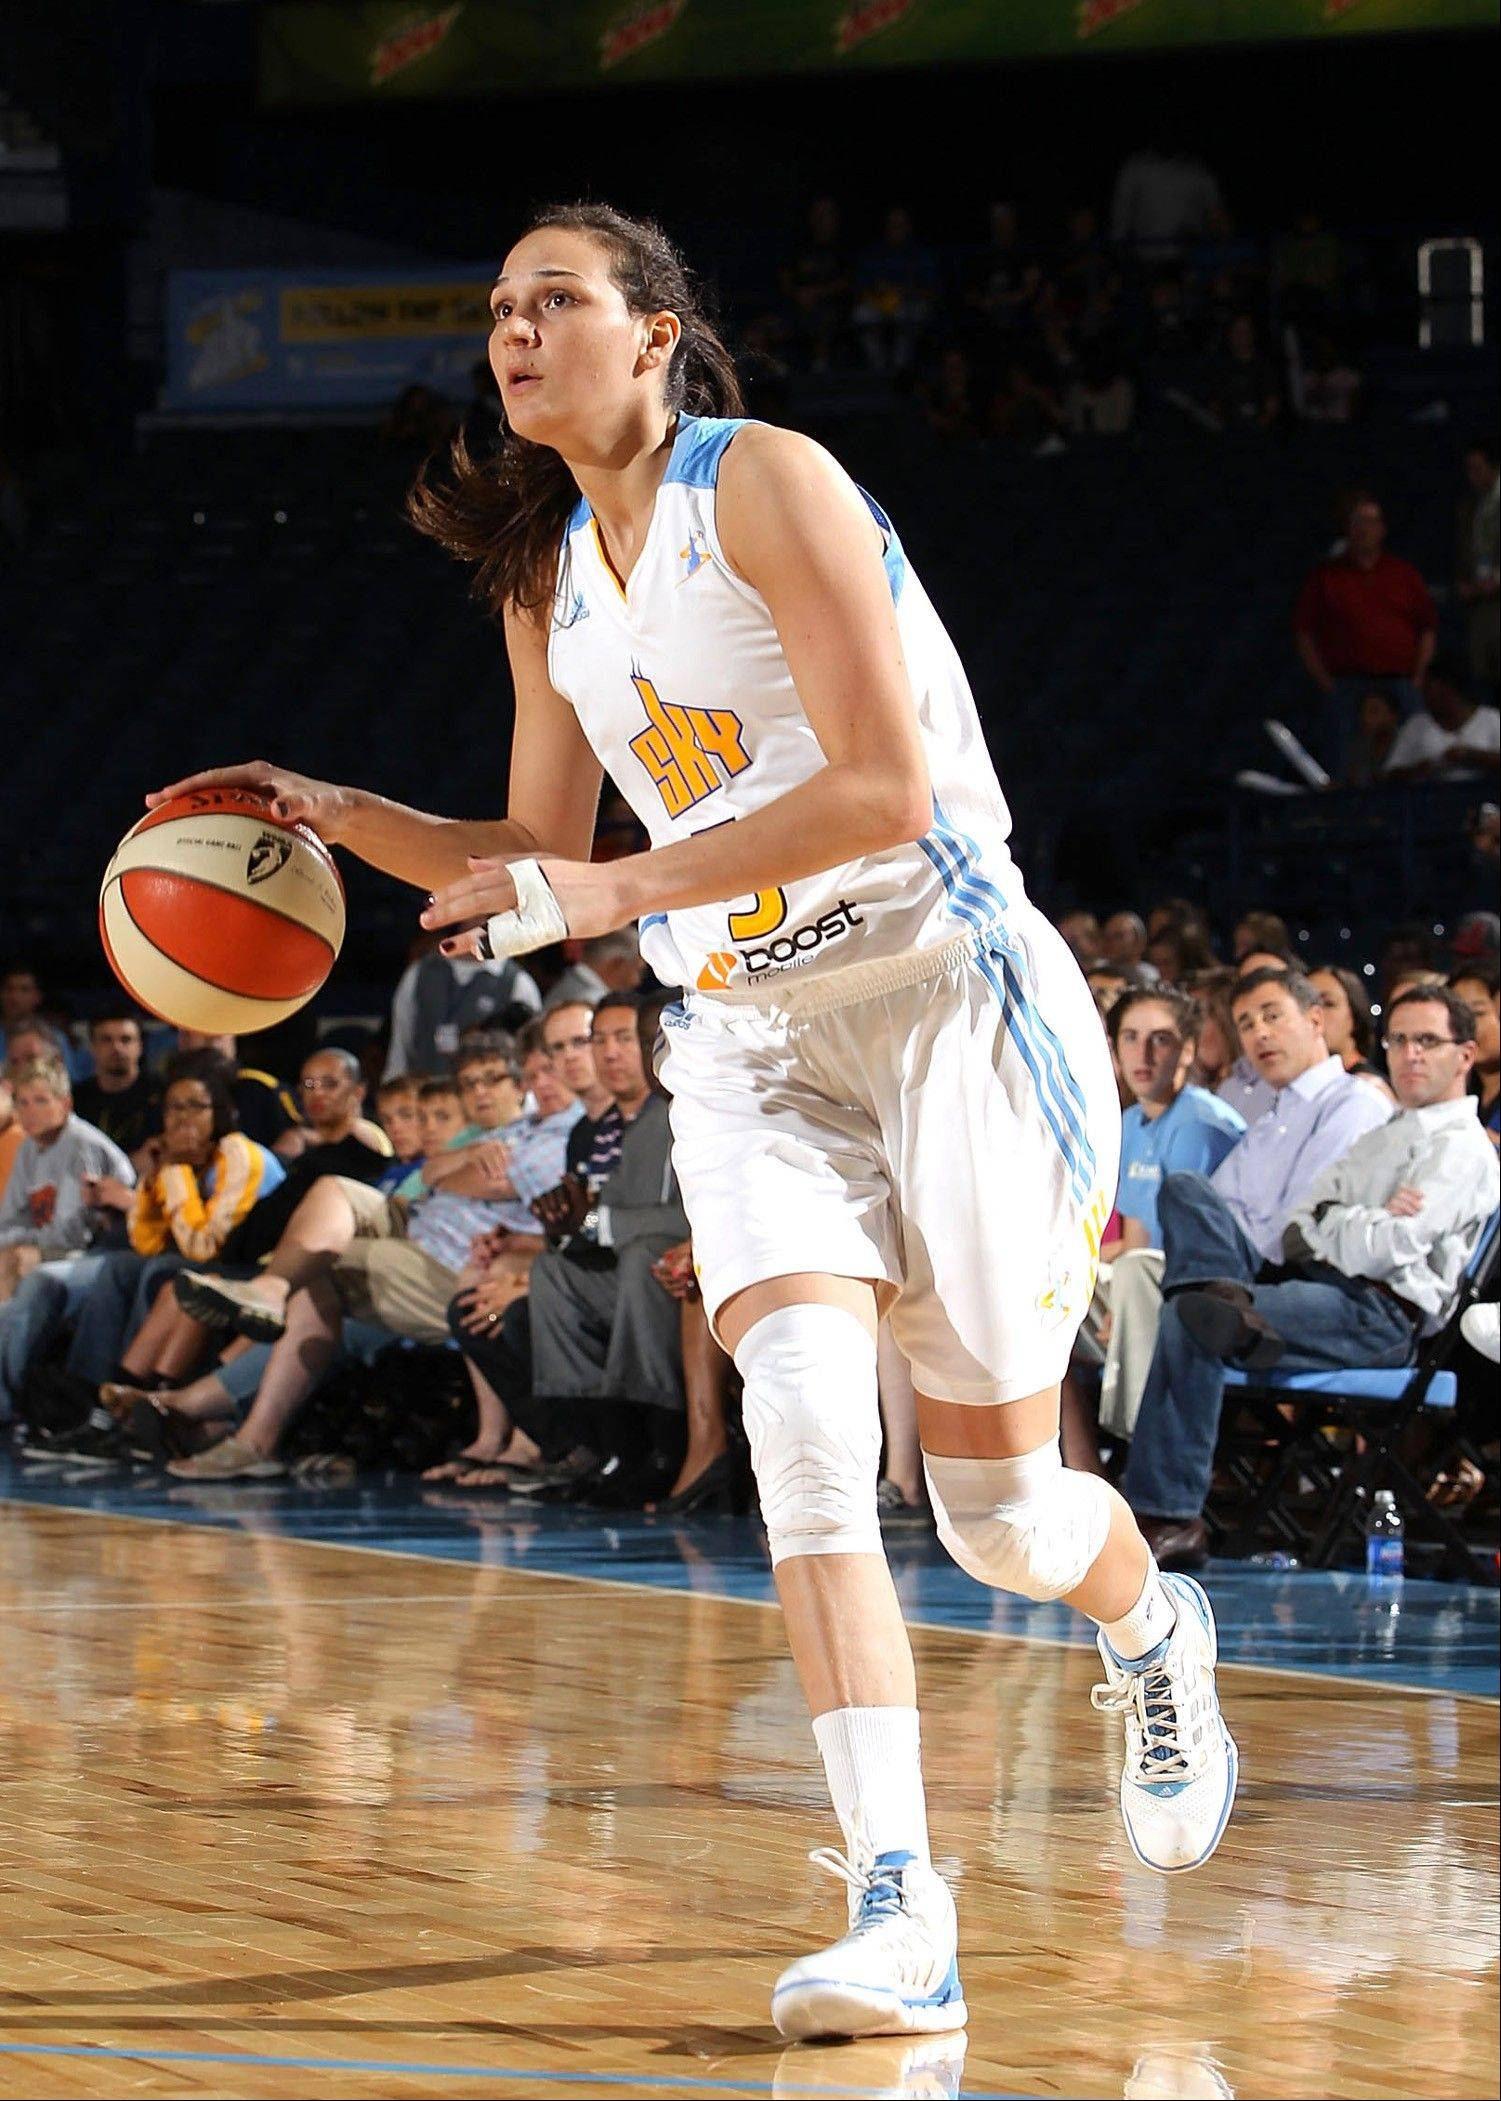 At 23, Sonja Petrovic is a rookie in the WNBA, but this 6-foot-1 small forward for Chicago Sky has nine years of experience playing professional basketball in Europe.